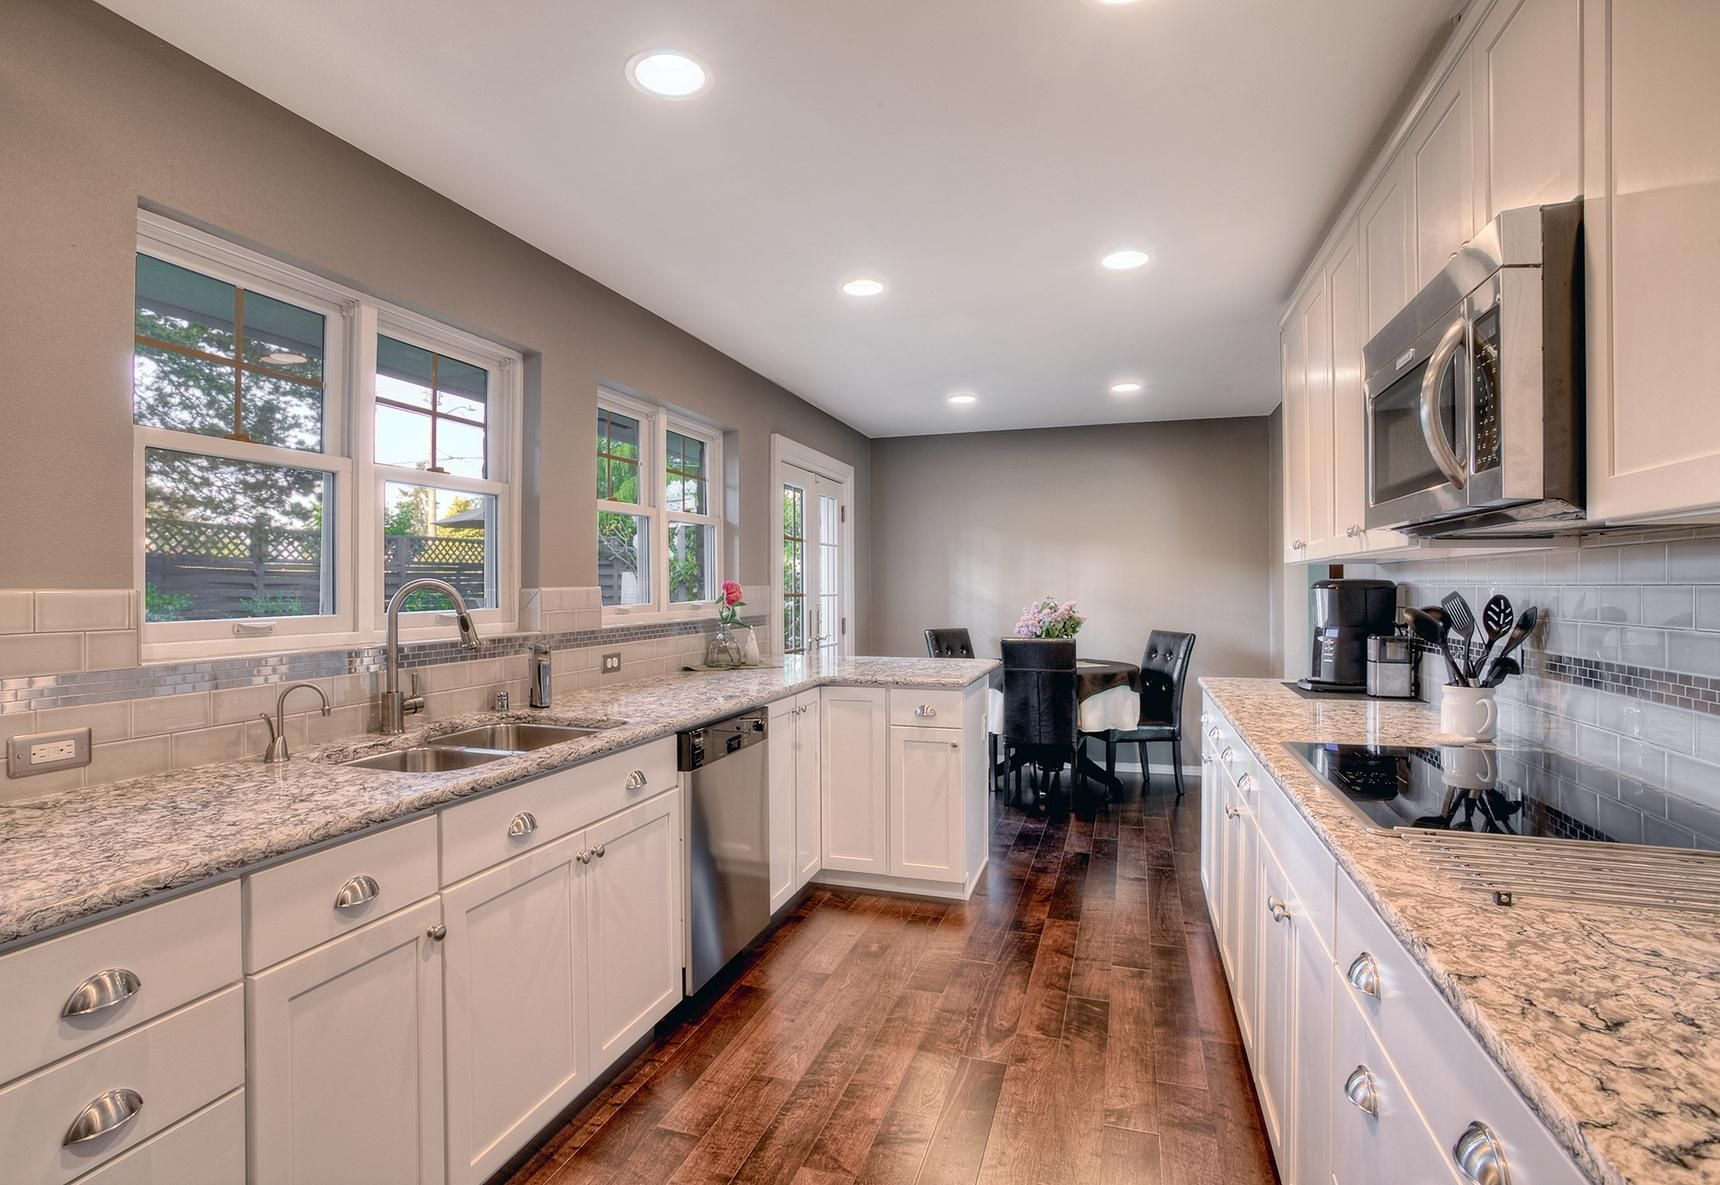 Kitchen Color Schemes How to Avoid Kitschy Colors Best